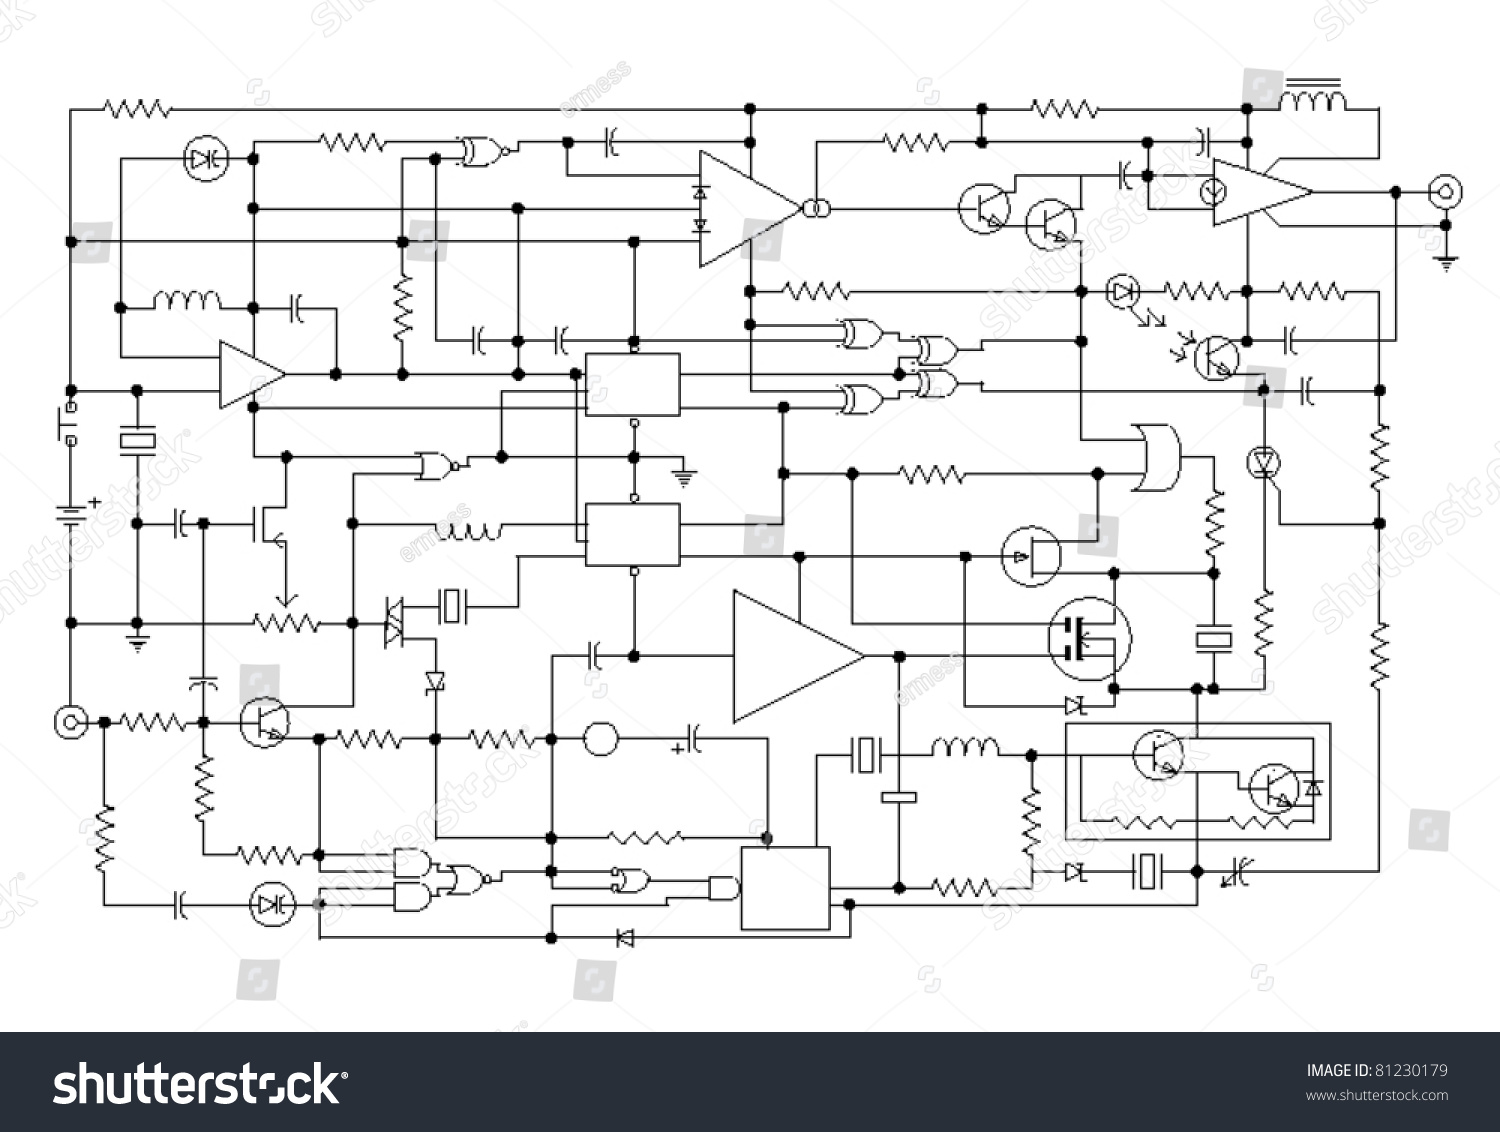 schematic diagram - project of electronic circuit - graphic design of ...